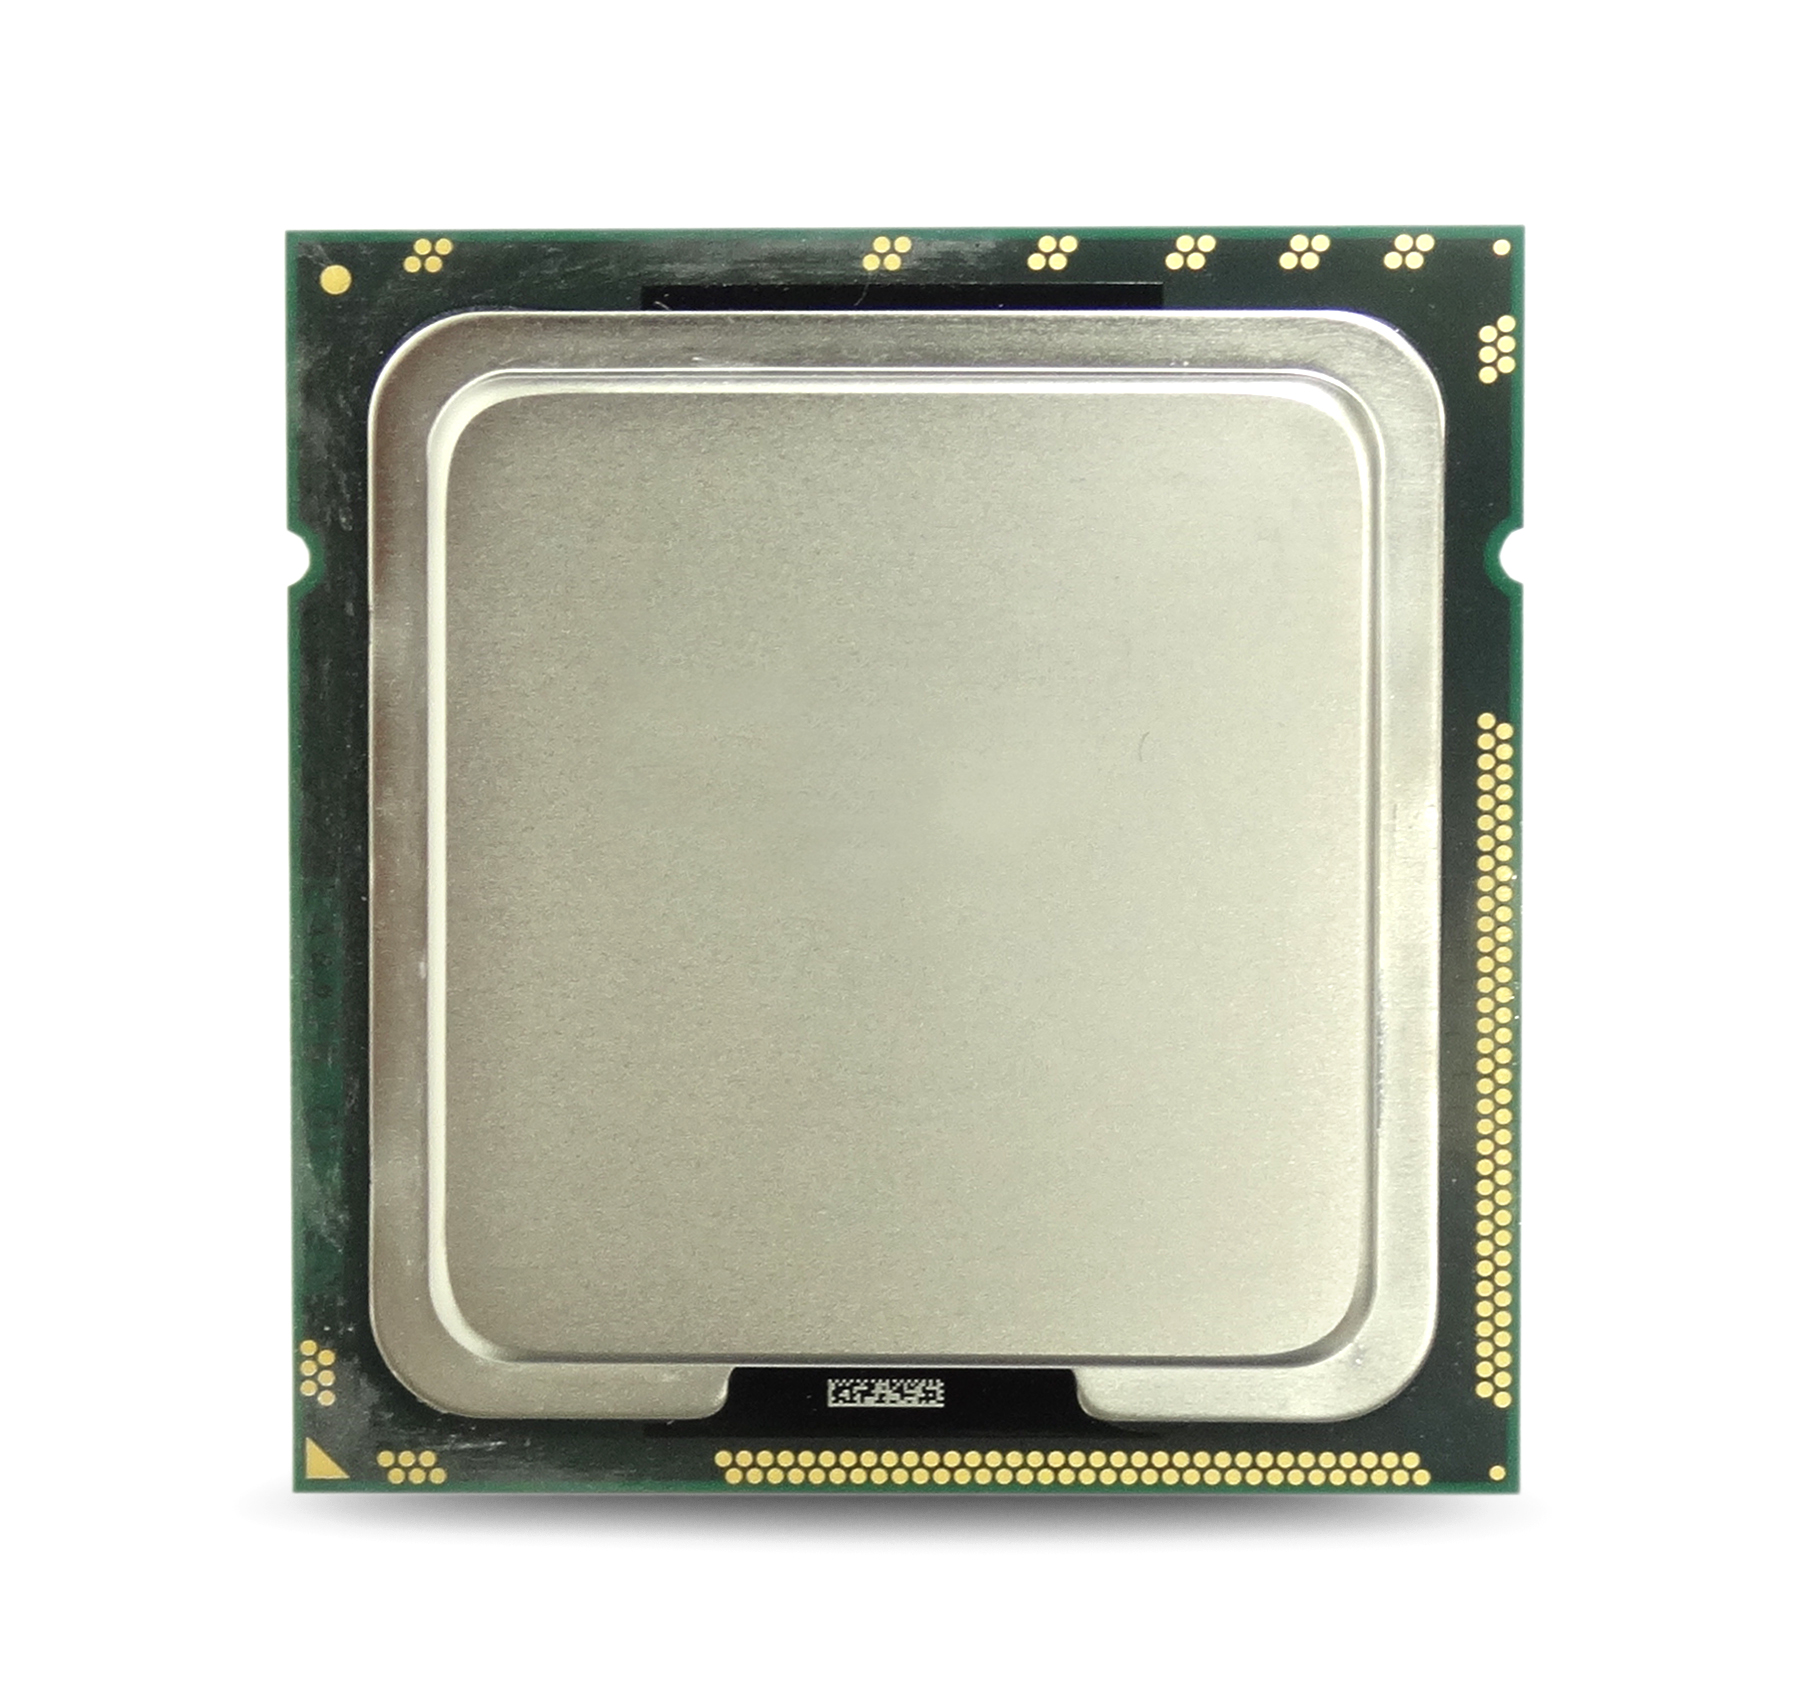 Intel Core 2 Duo E6420 2.13GHz 4MB 1066MHz Processor (SLA4T)